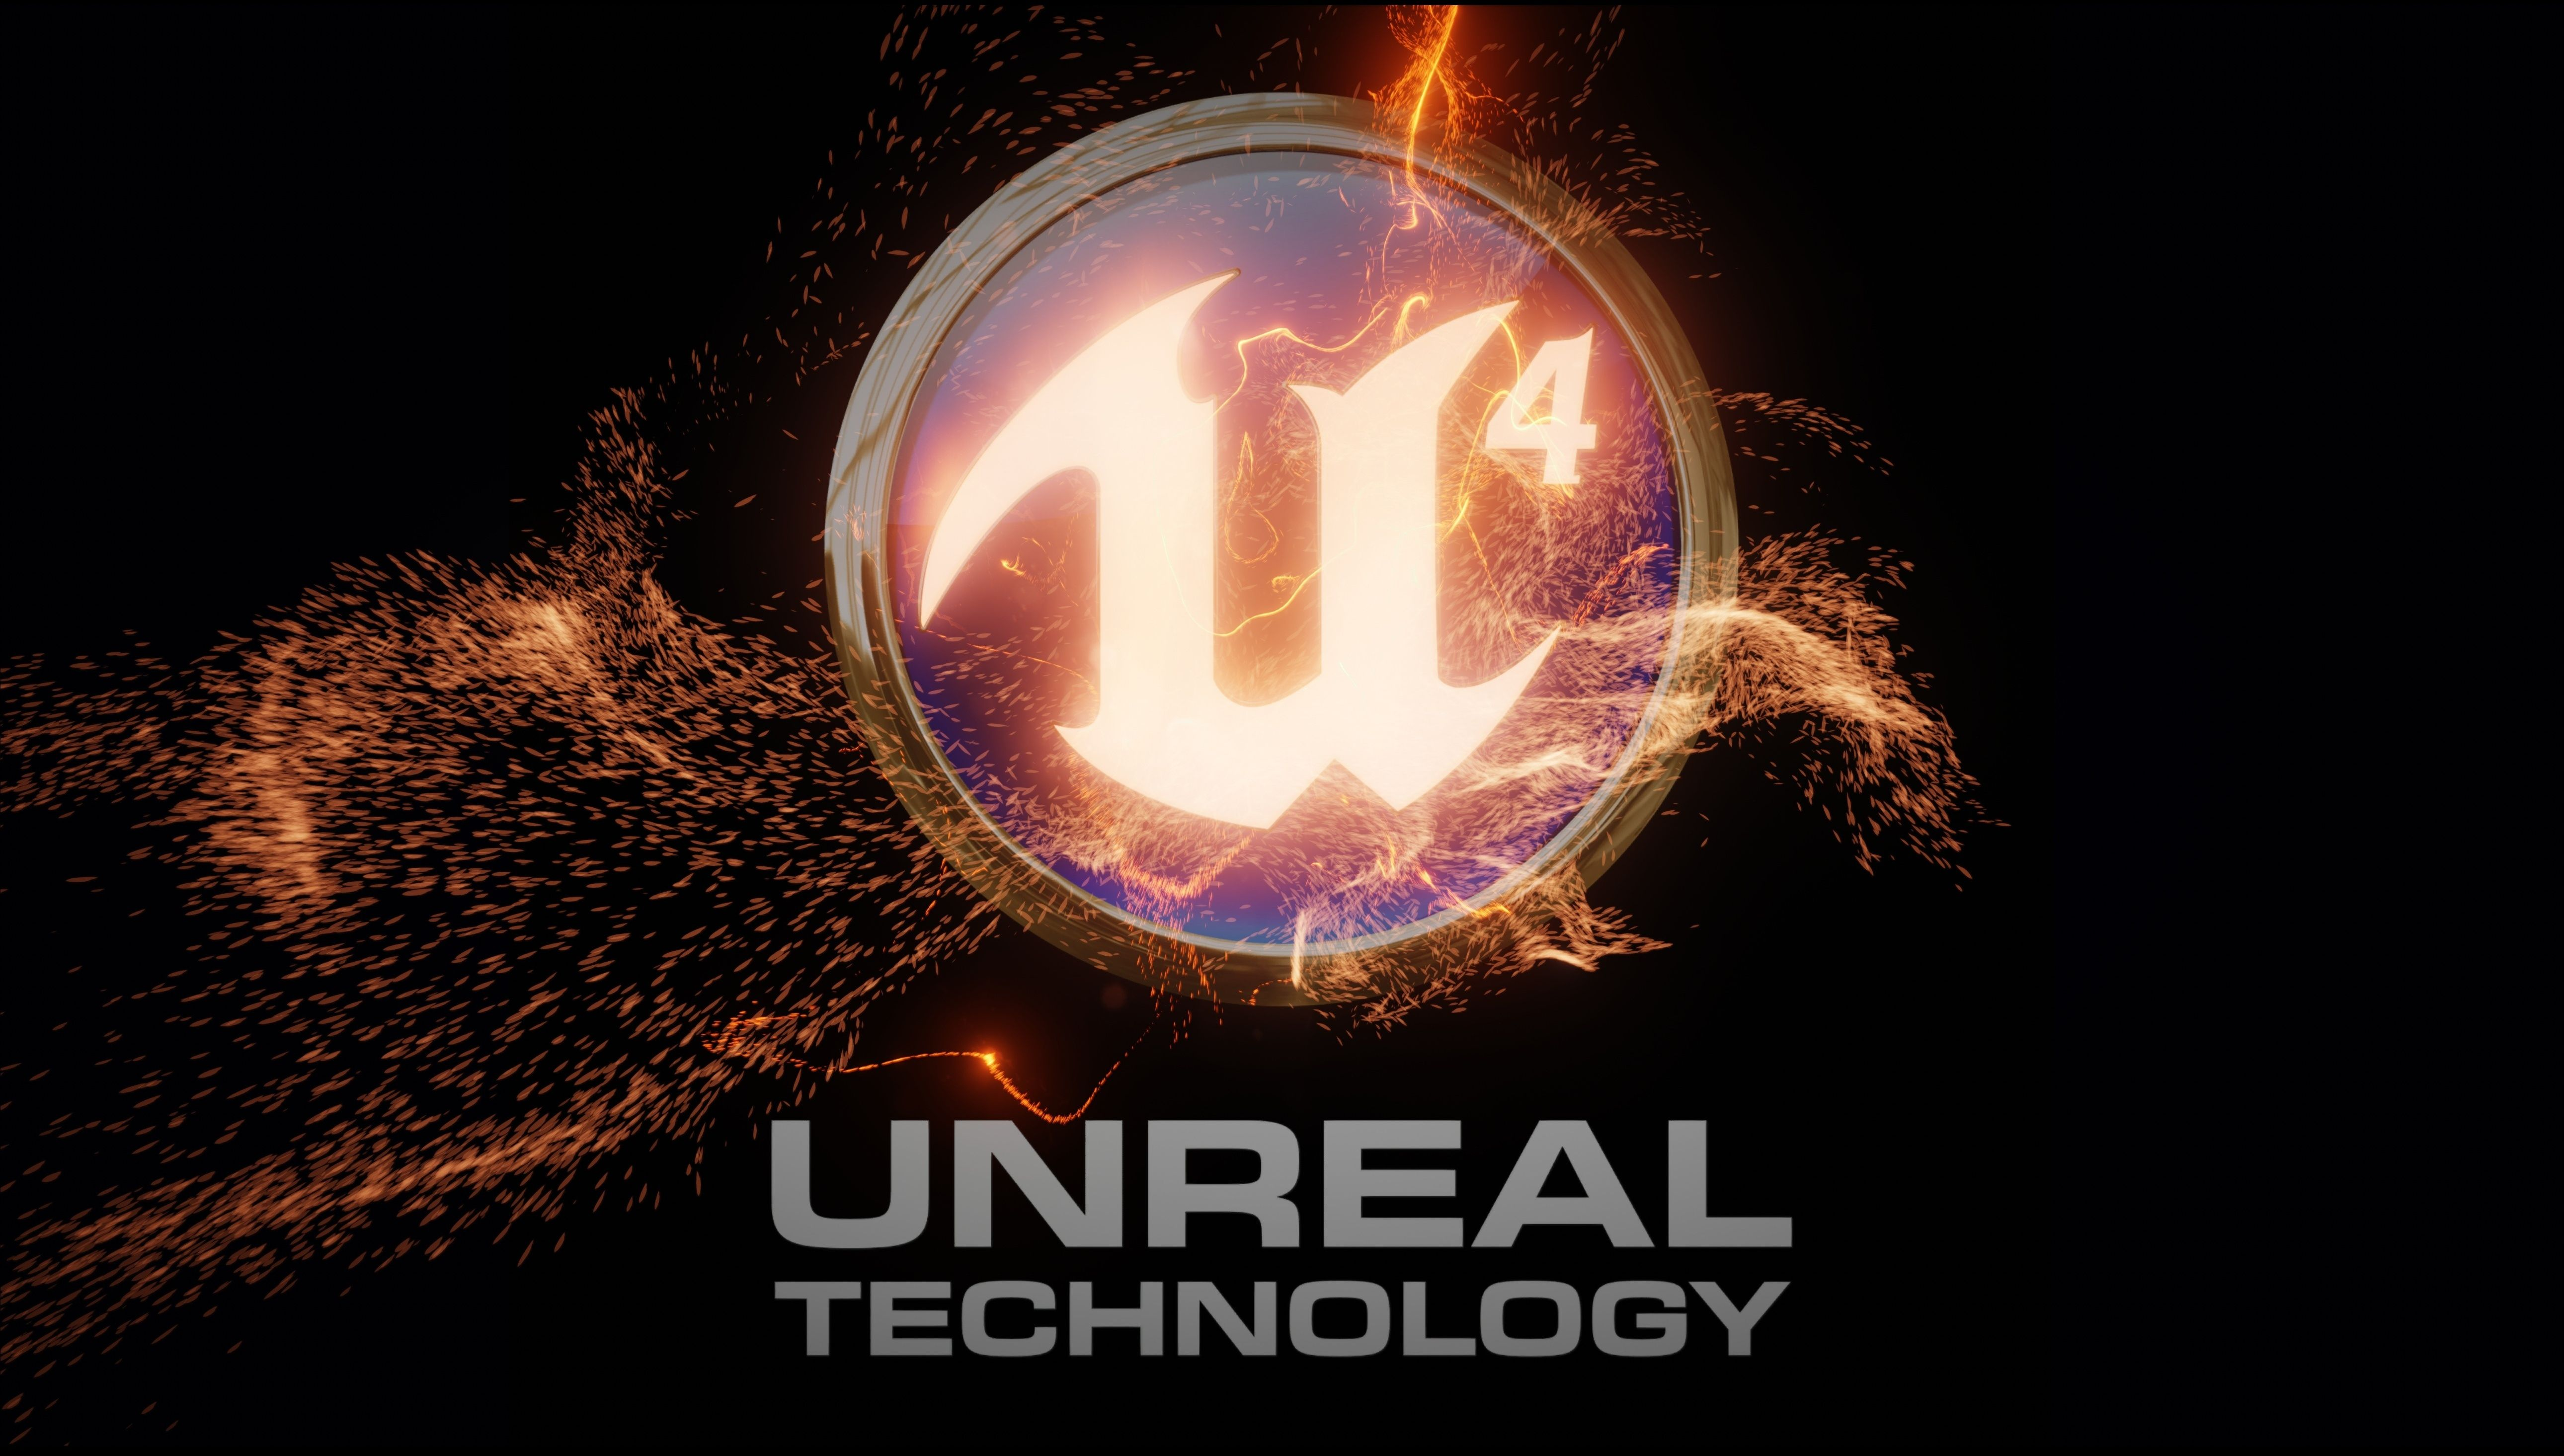 Epic Games Releases the Full Unreal Engine 4 and Source Code